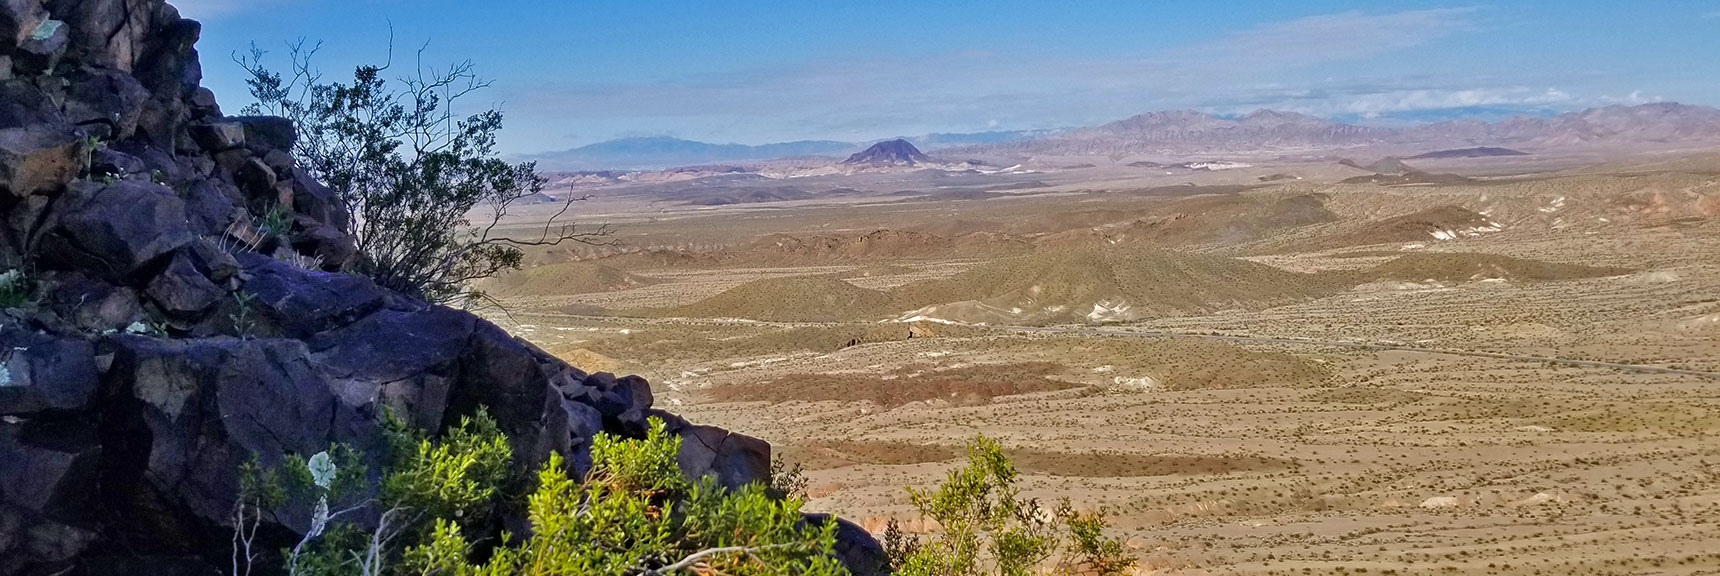 View While Ascending North Western Side of Black Mesa in Lake Mead National Recreation Area, Nevada